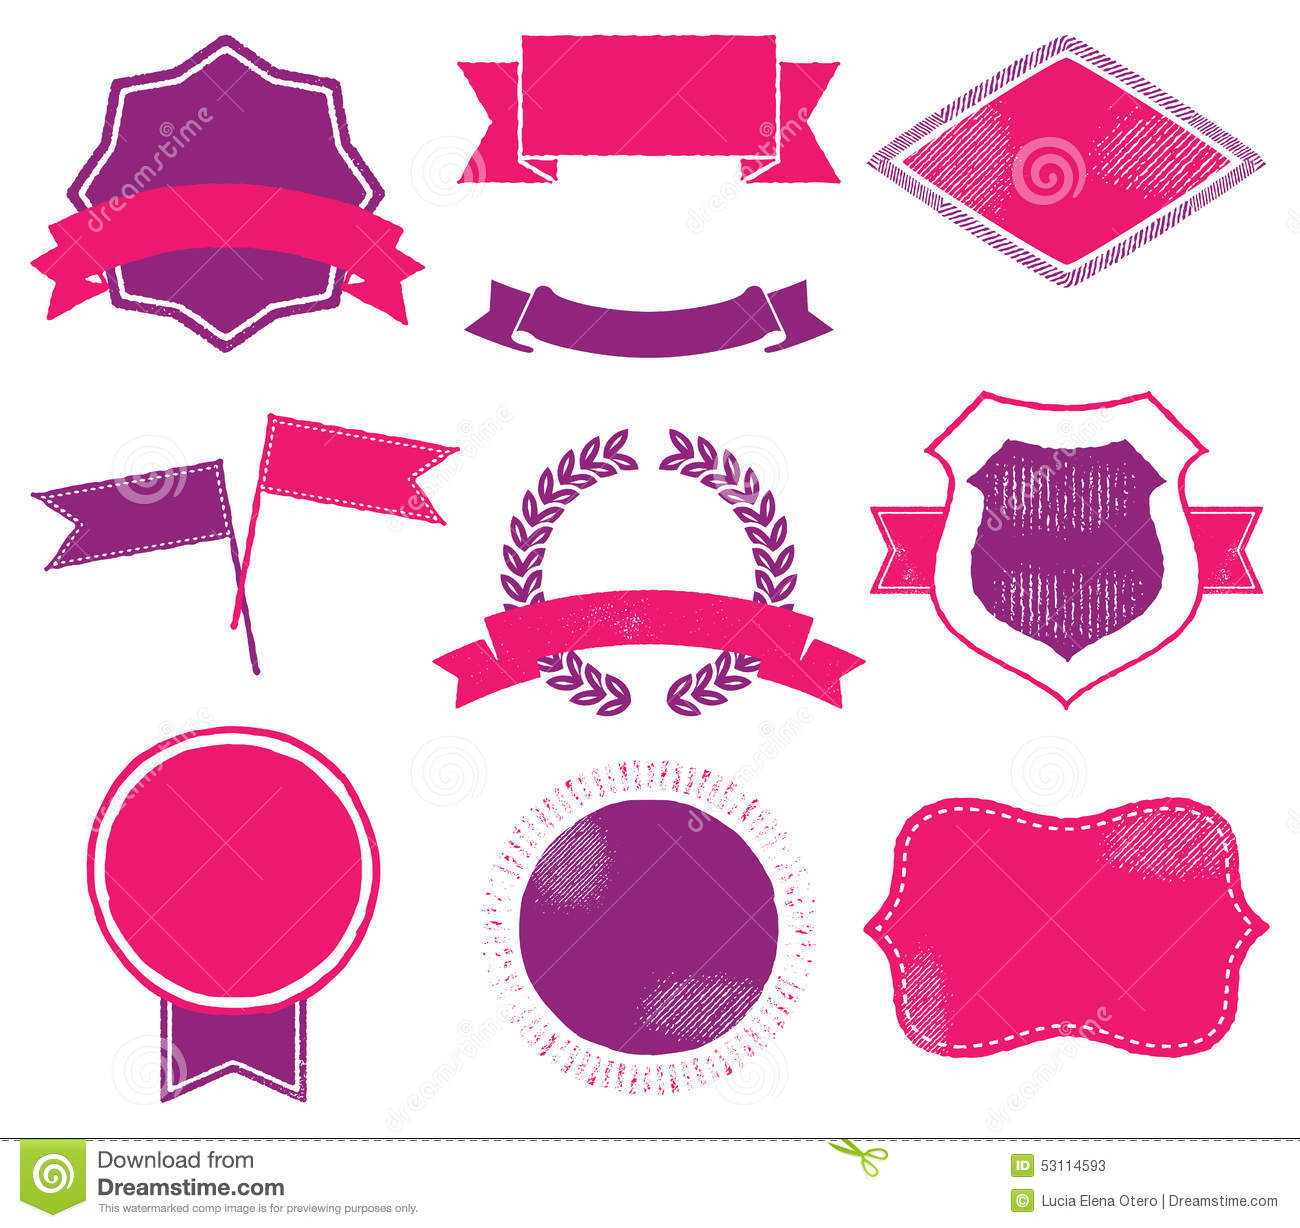 vibrant logo templates stock vector illustration of collection